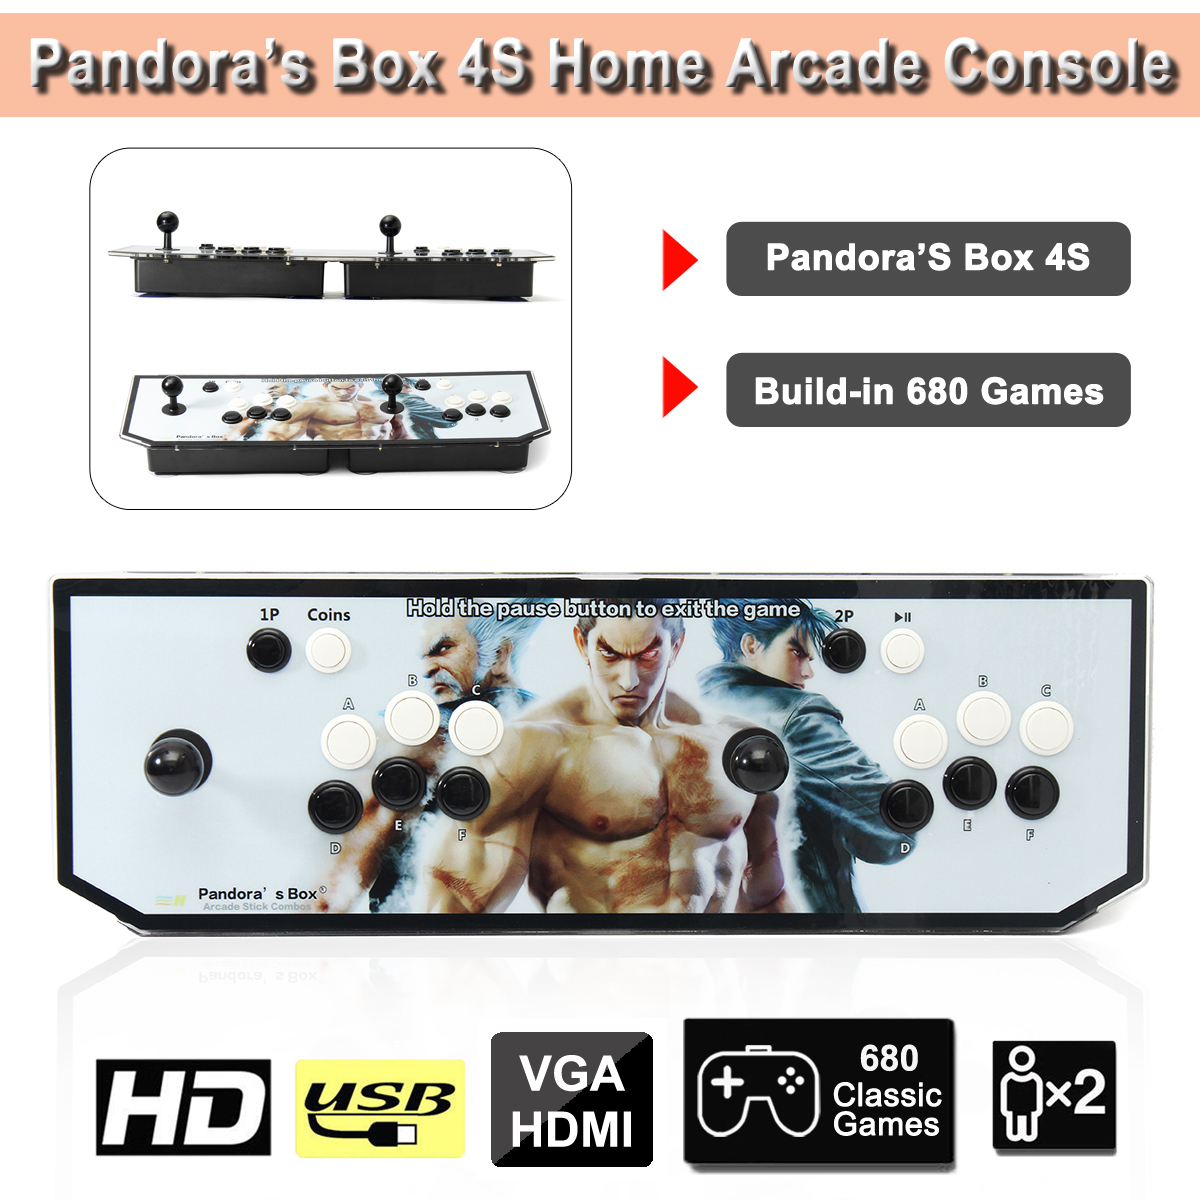 680 Games Double Stick Arcade Console Game Box 4S Street Fighter HDMI VGA Coin Operated Games Video Arcade Machine arcade fighting game machine virtua fighter 5 games motherboard